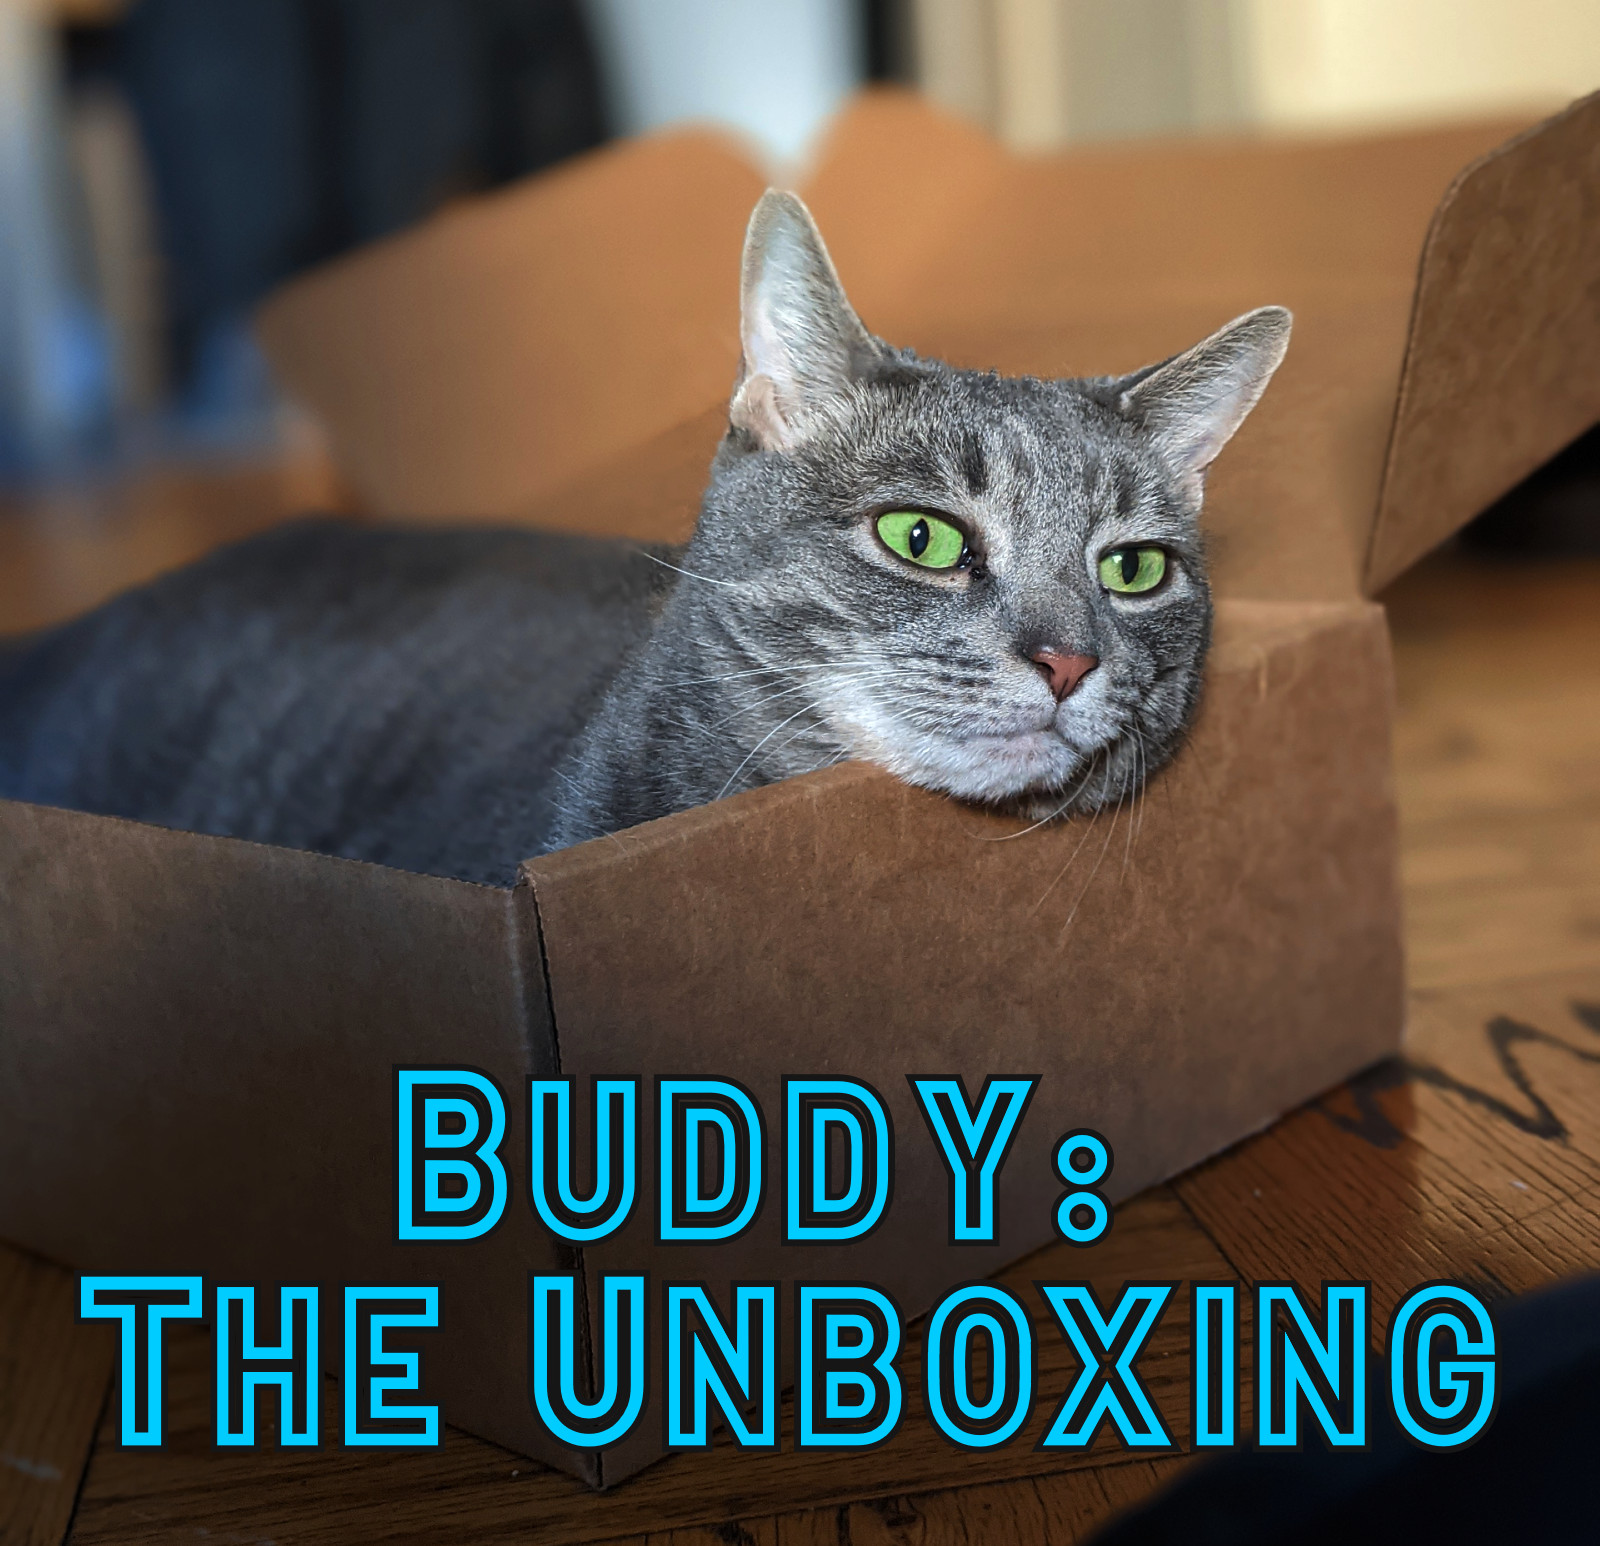 Buddy: The Unboxing